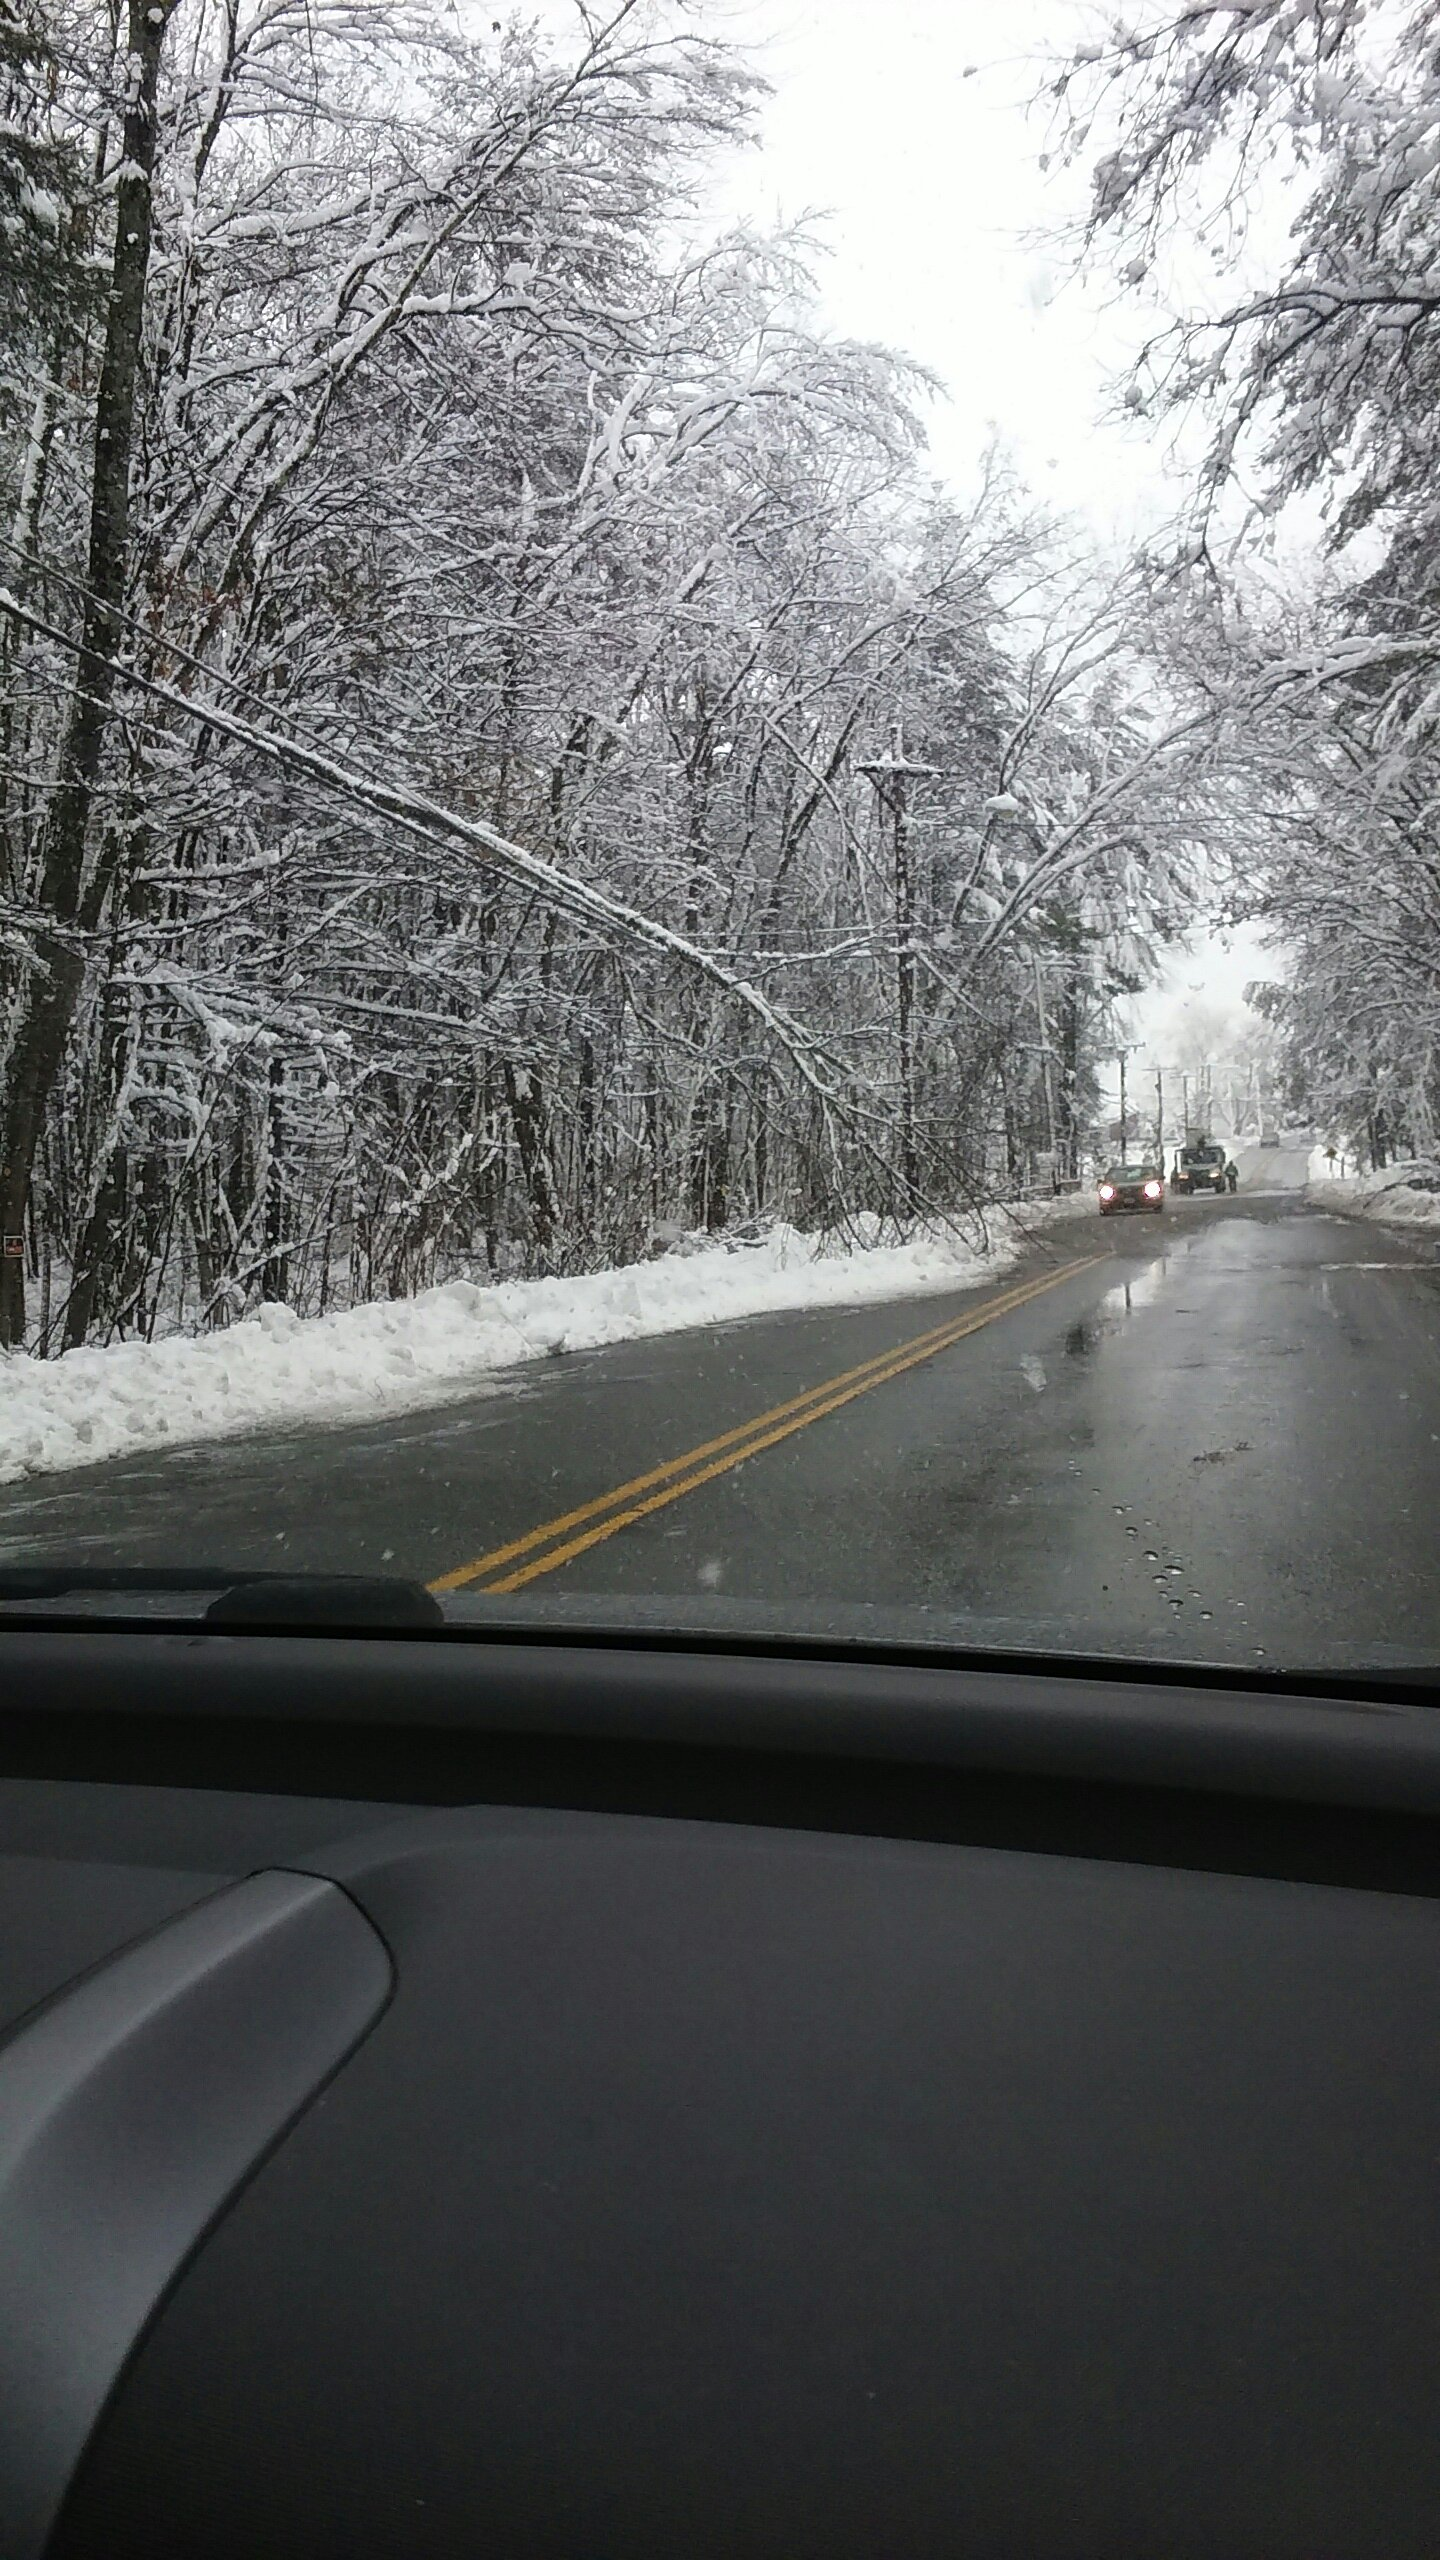 More snapped branches on power line - Frost Road.